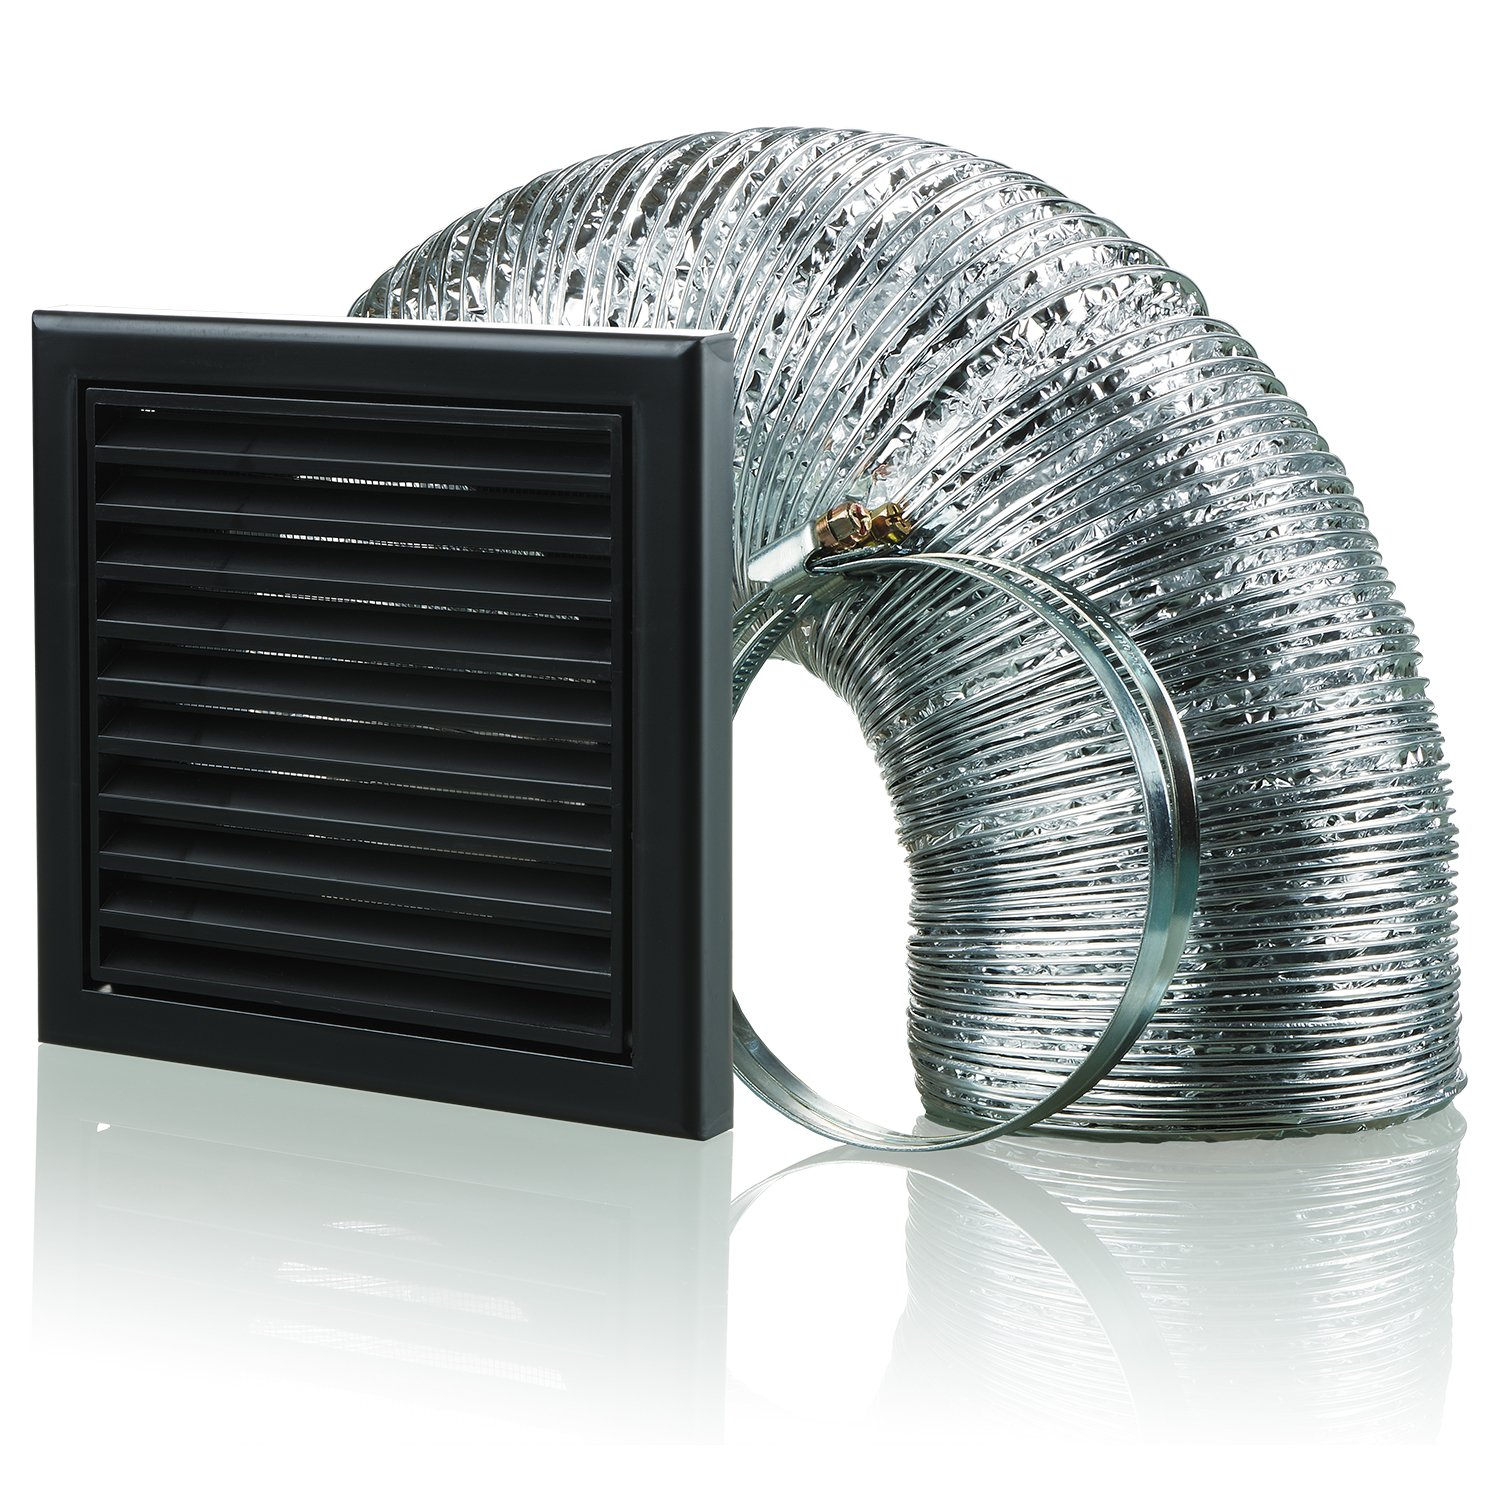 Blauberg UK BB-CHK-150-3-VSBL Cooker Hood Duct Vent Kit Fan Extract 150mm Black, 150 mm, Set of 4 Pieces